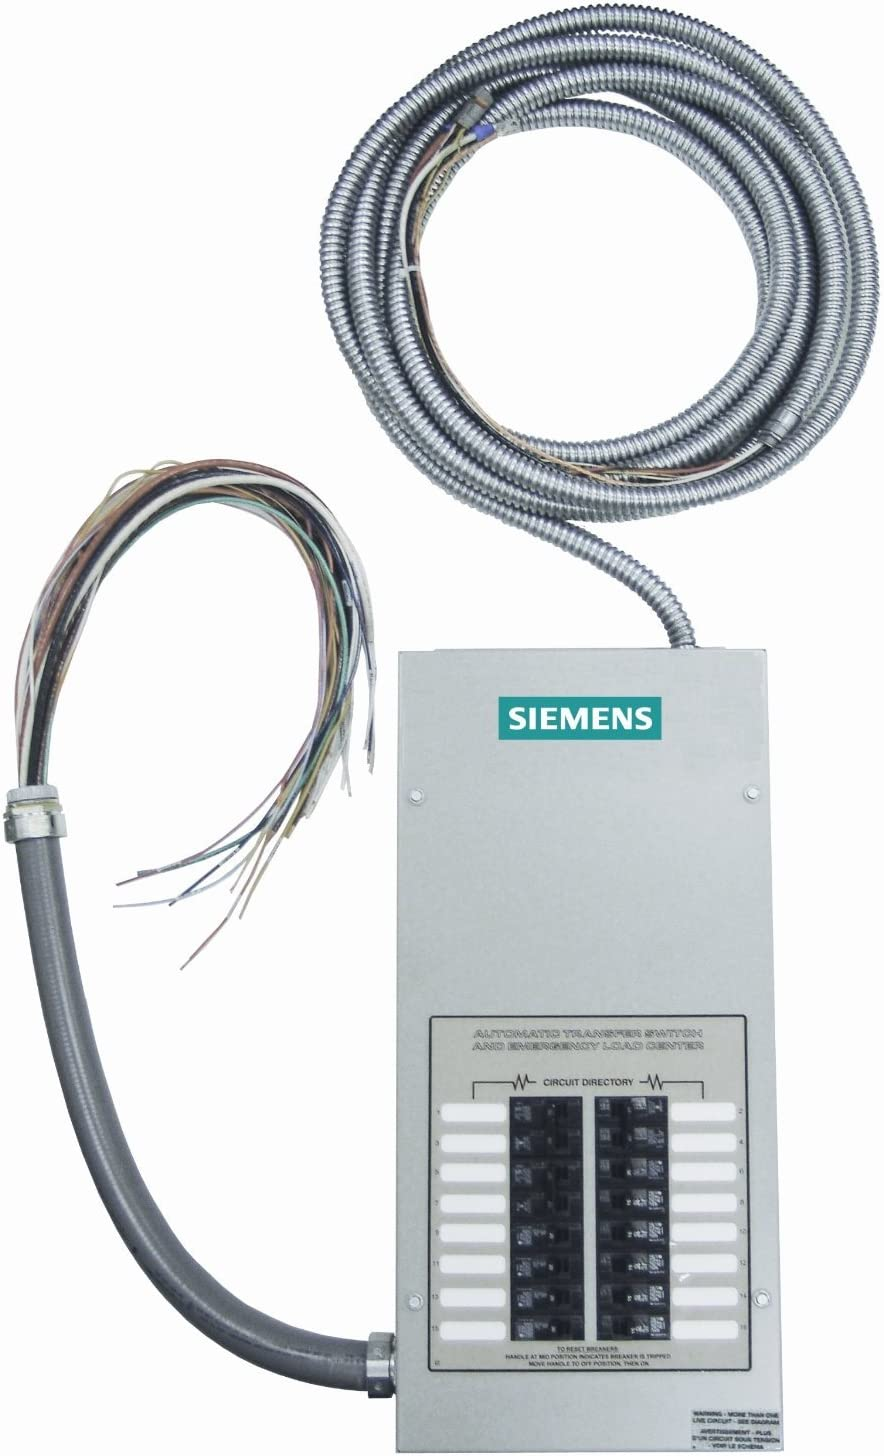 B004VCX2BC Siemens ST100R16C Pre-Wired, Indoor and Automatic Transfer Switch with 16 Critical Circuits 71Ilh84gS6L.SL1500_